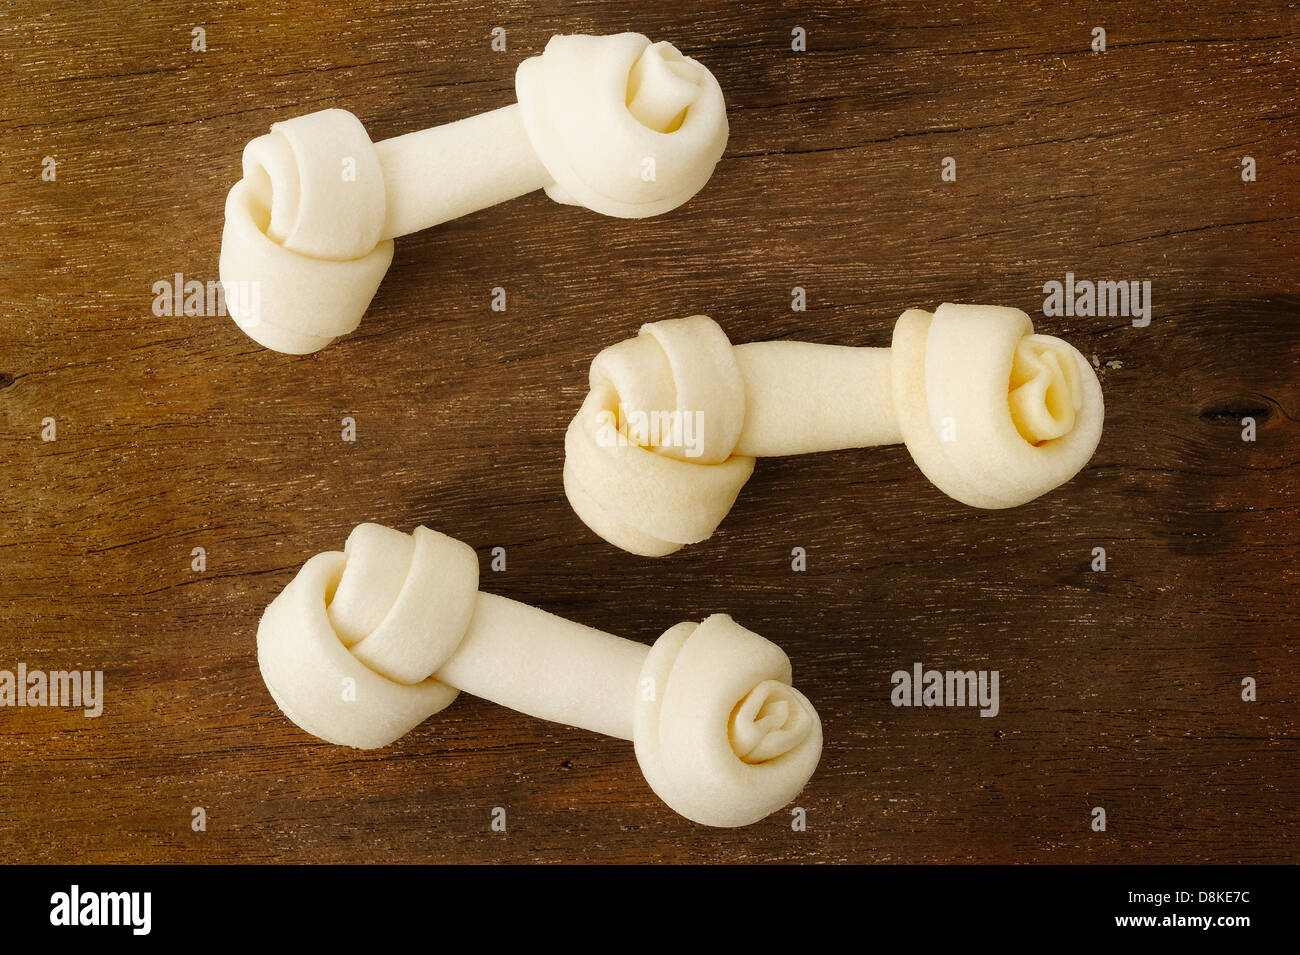 Bone toy for dogs on wooden background - Stock Image